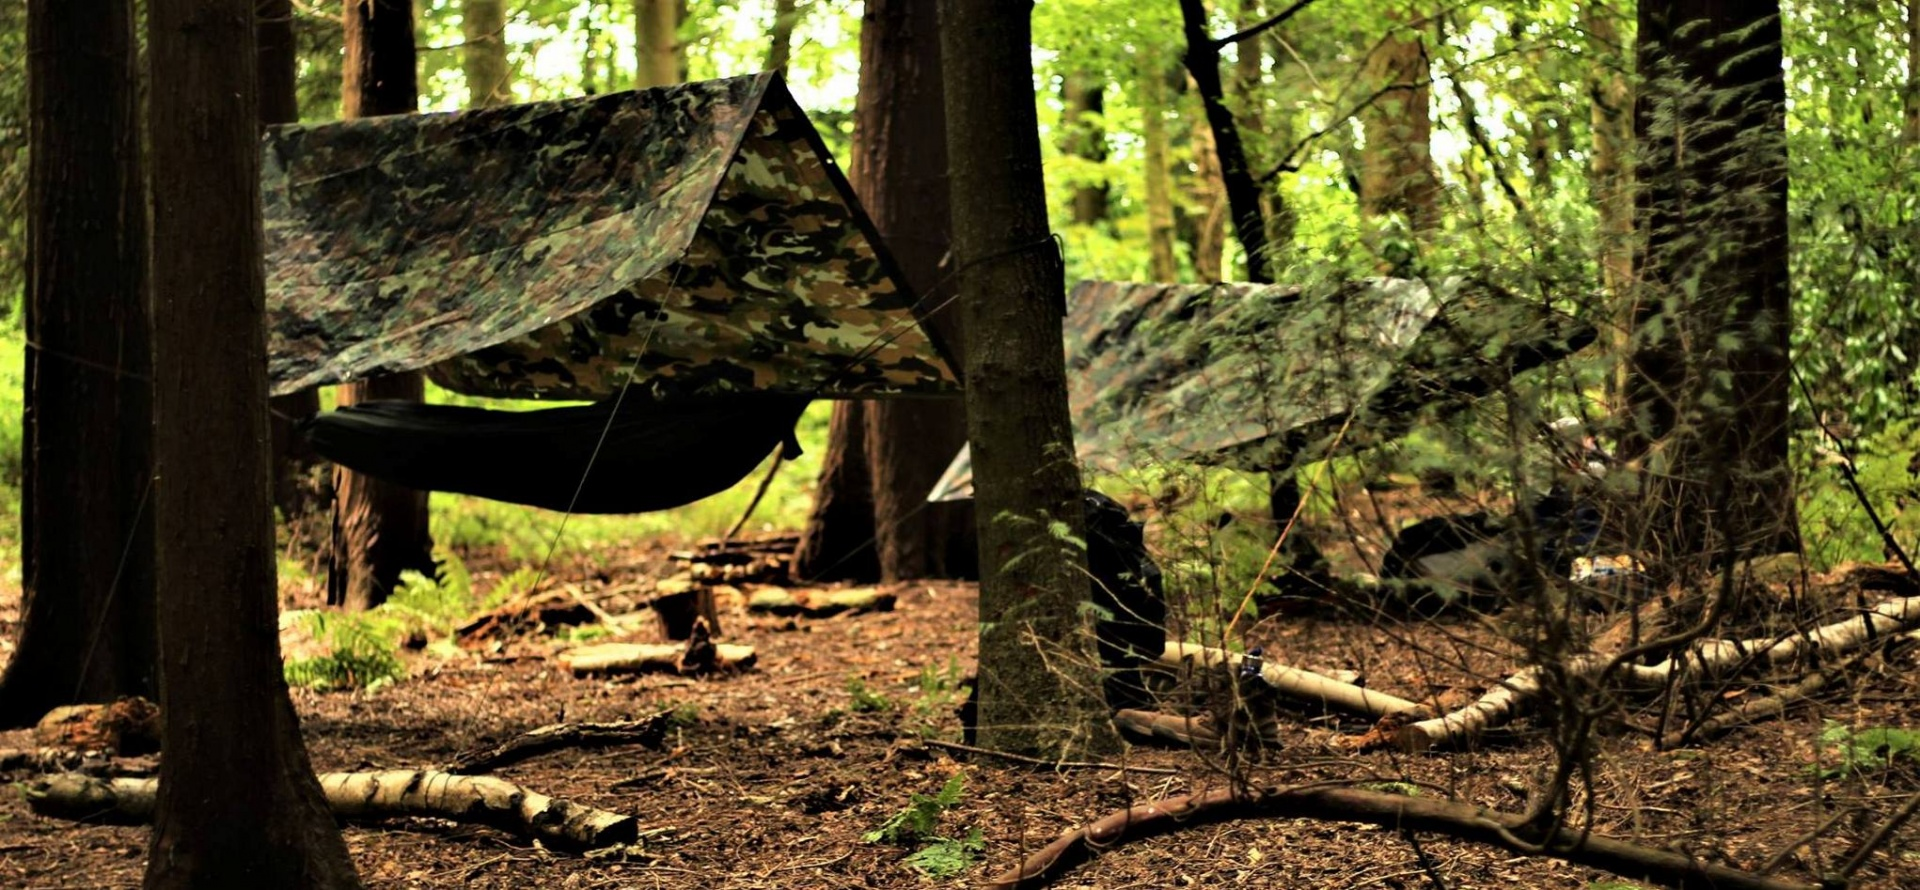 2 Day Bushcraft And Survival Course In Shropshire